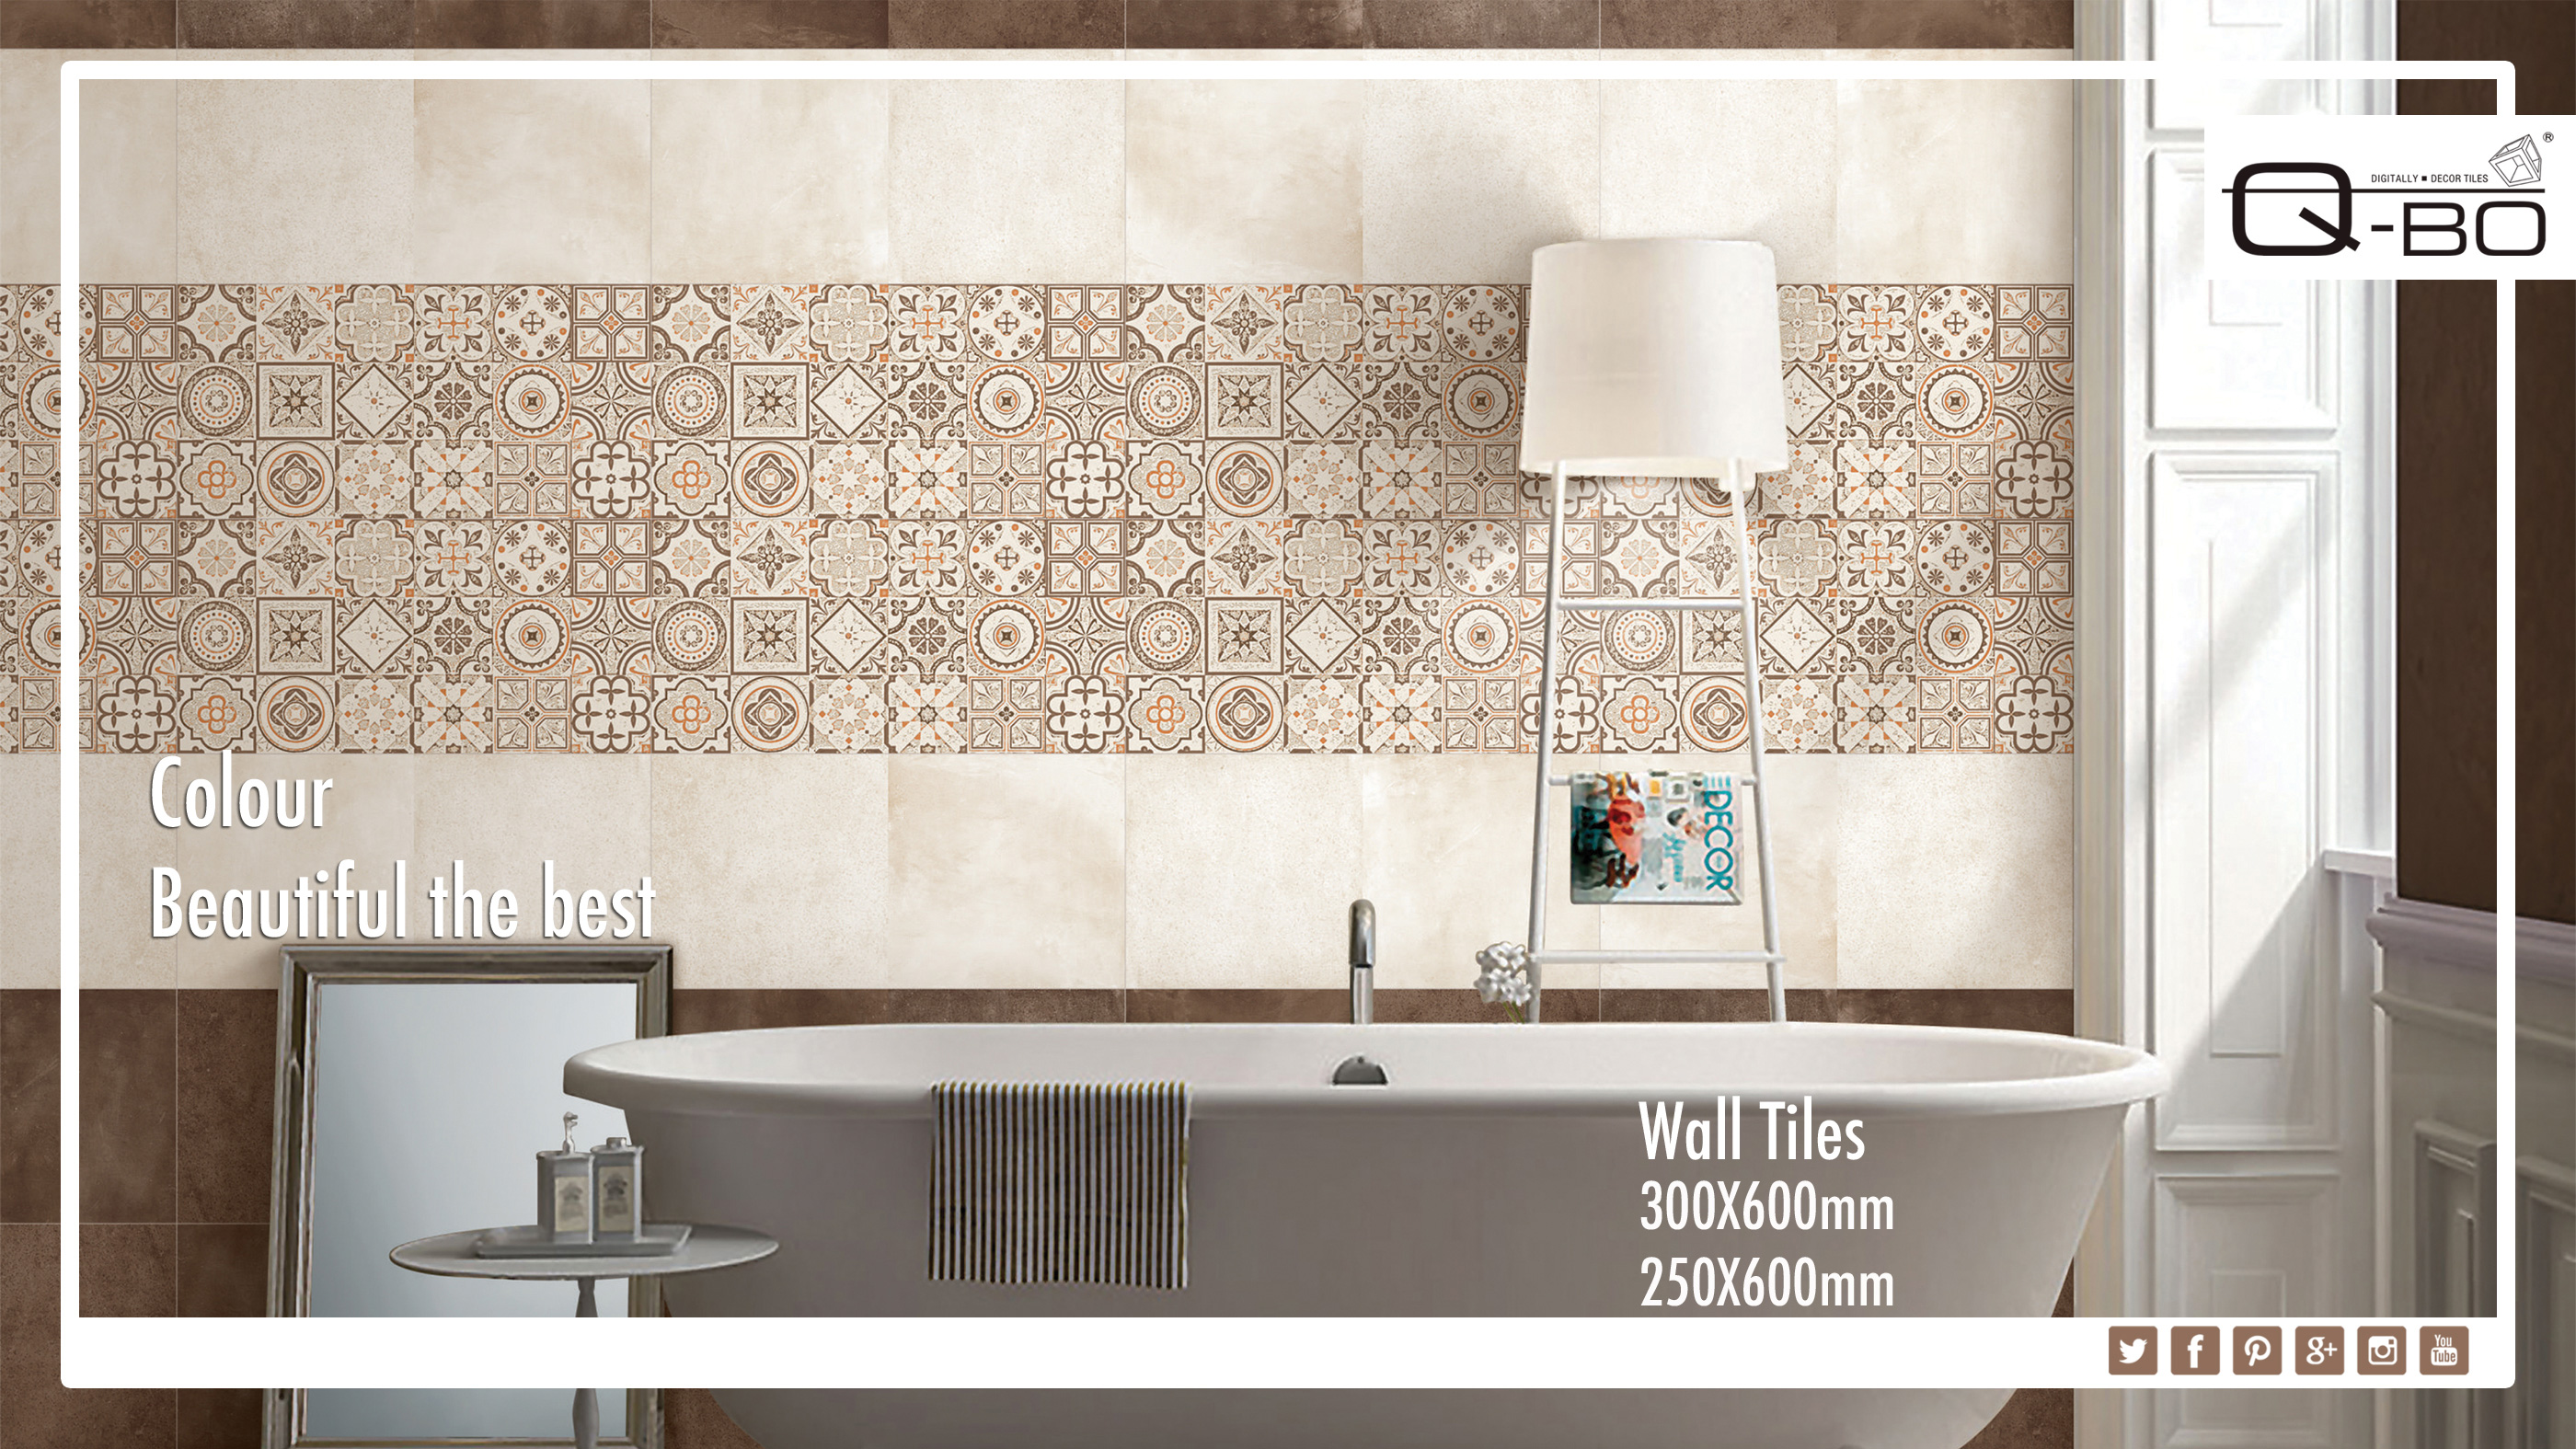 13 Tile Tips For Better Bathroom Tile: Tips To Consider On Choosing A Right Bathroom Wall Tiles